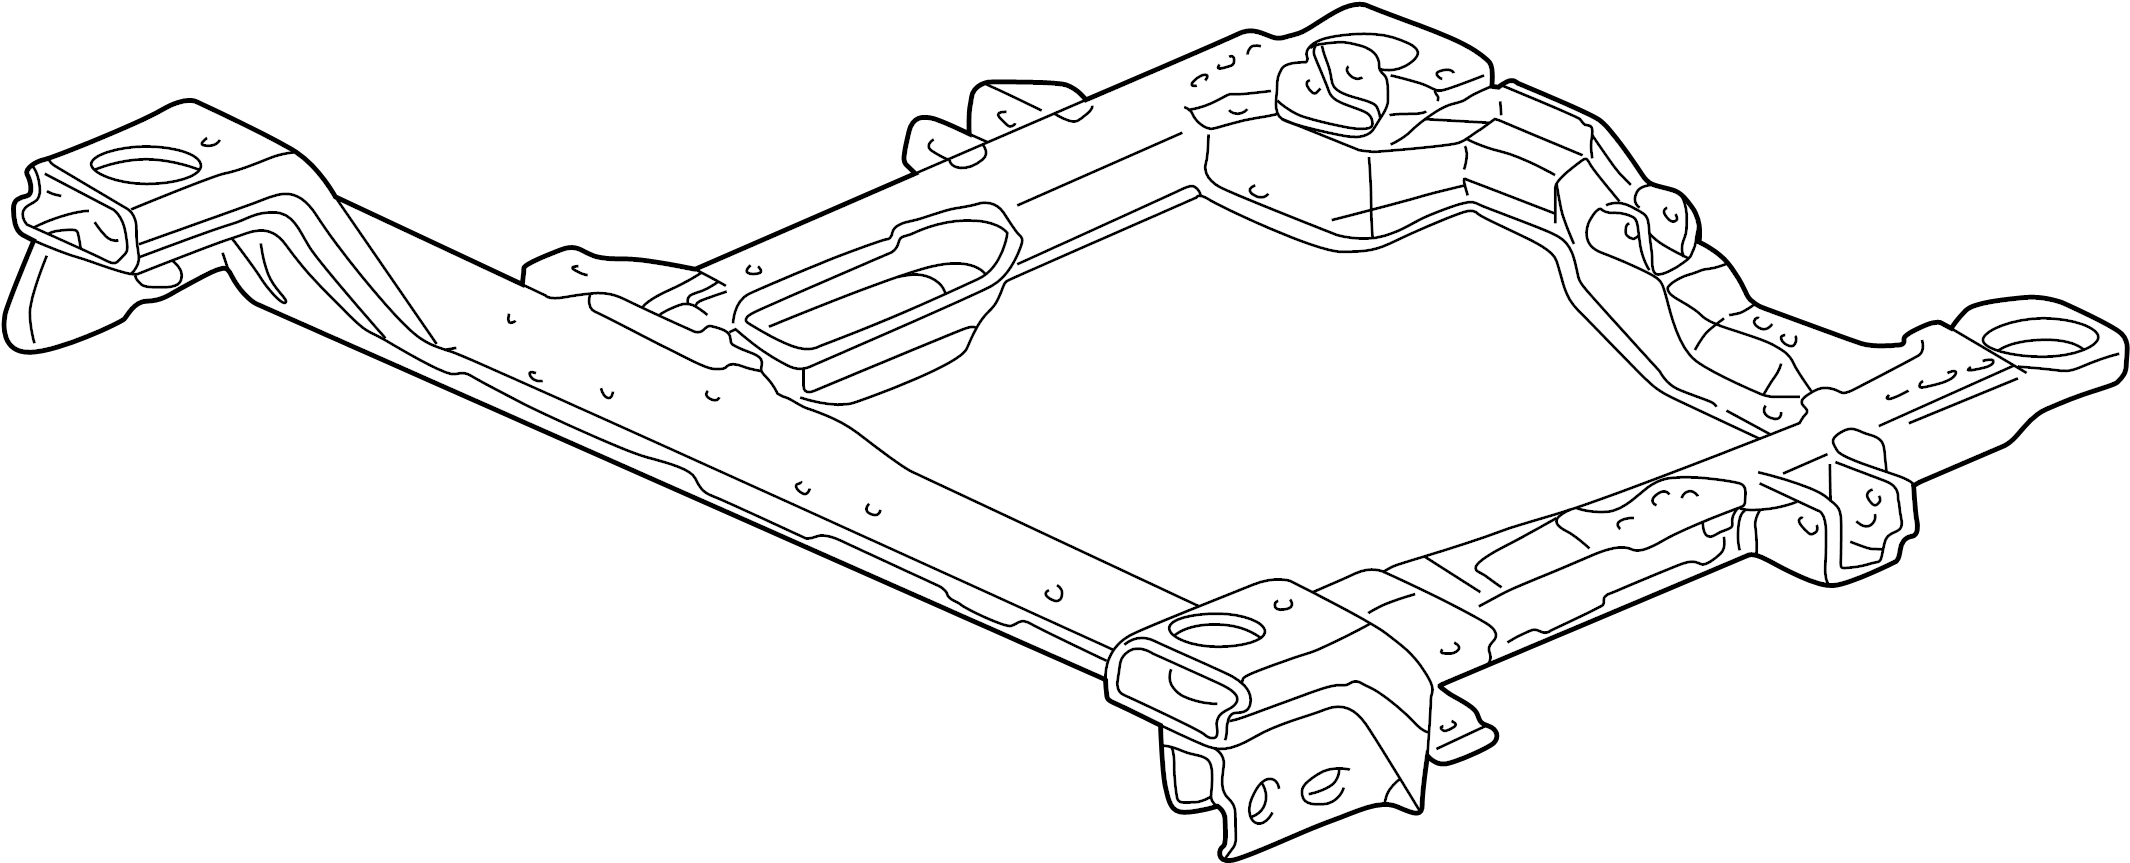 Buick Century Engine Crossmember Cradle Bracket